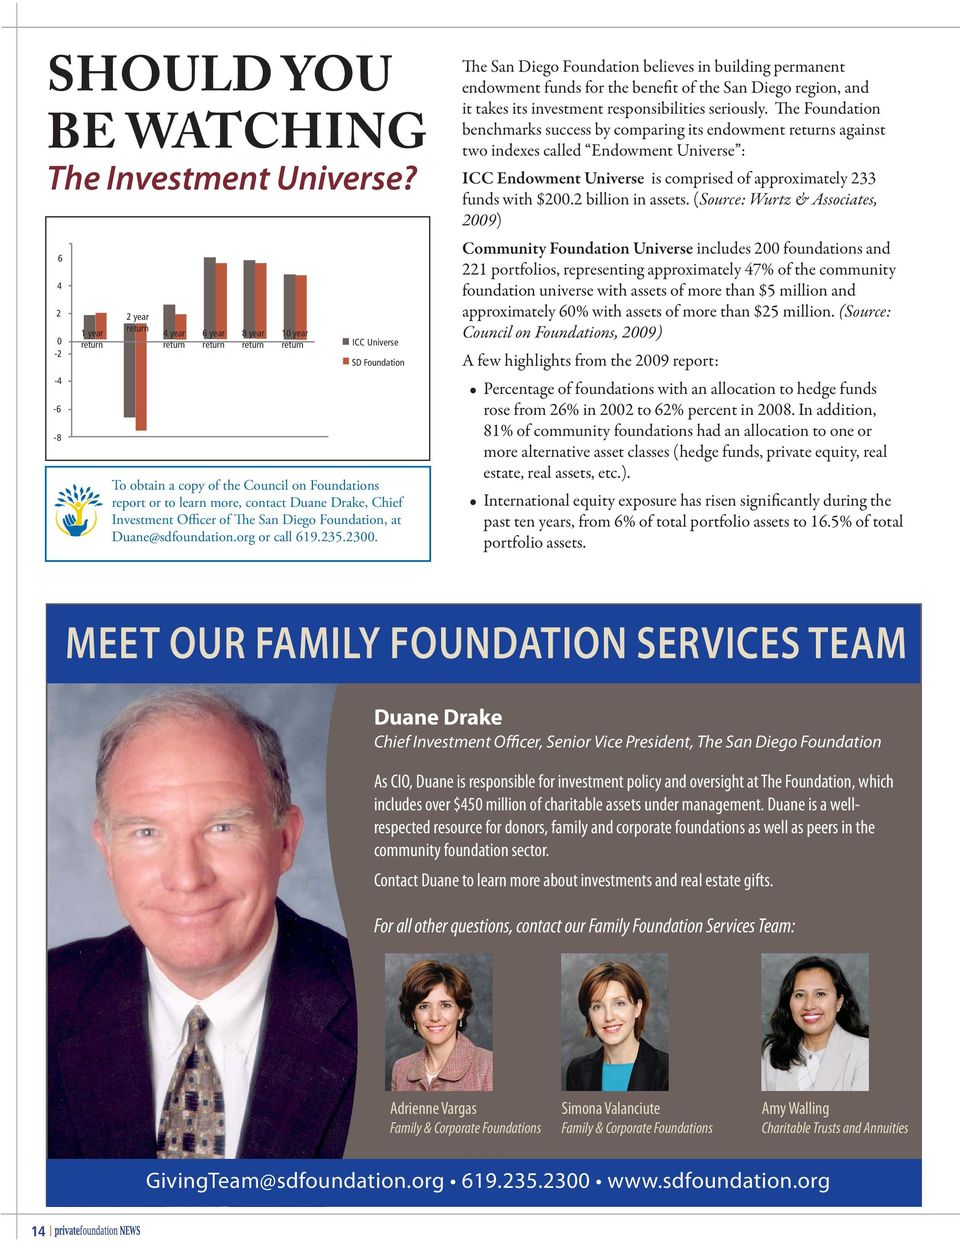 more, contact Duane Drake, Chief Investment Officer of The San Diego Foundation, at Duane@sdfoundation.org or call 619.235.2300.